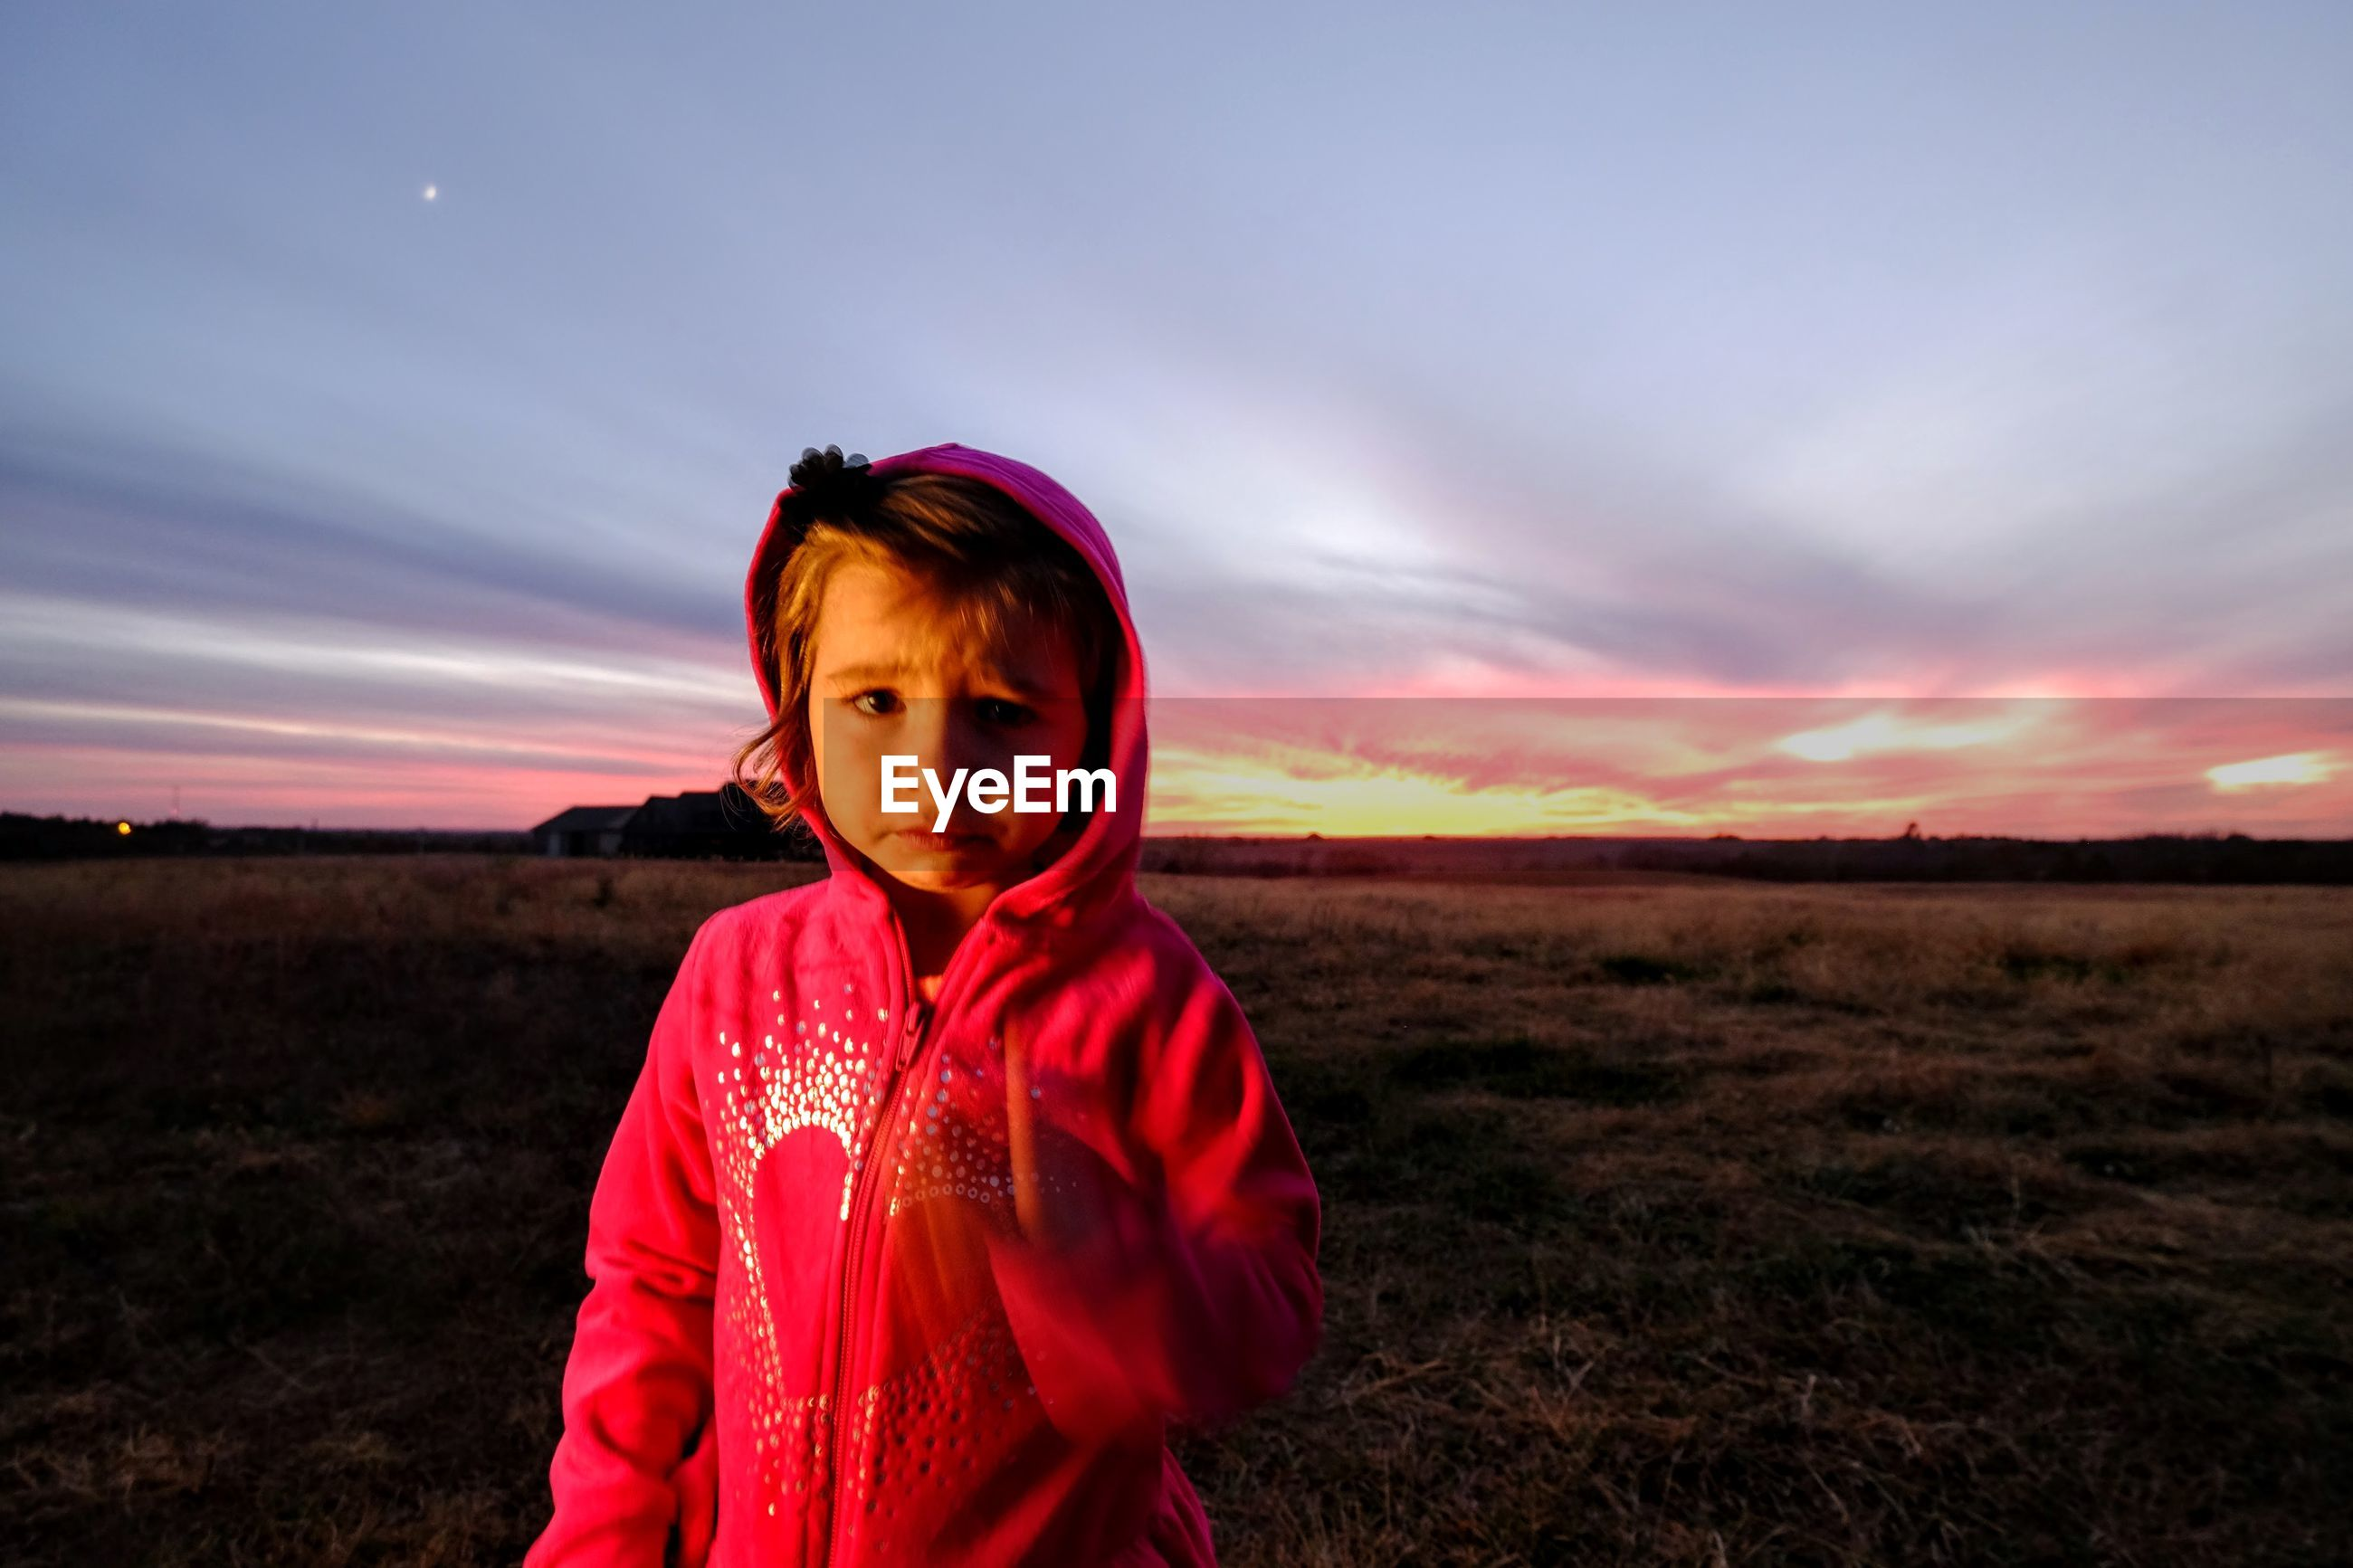 Portrait of girl standing on field against sky during sunset